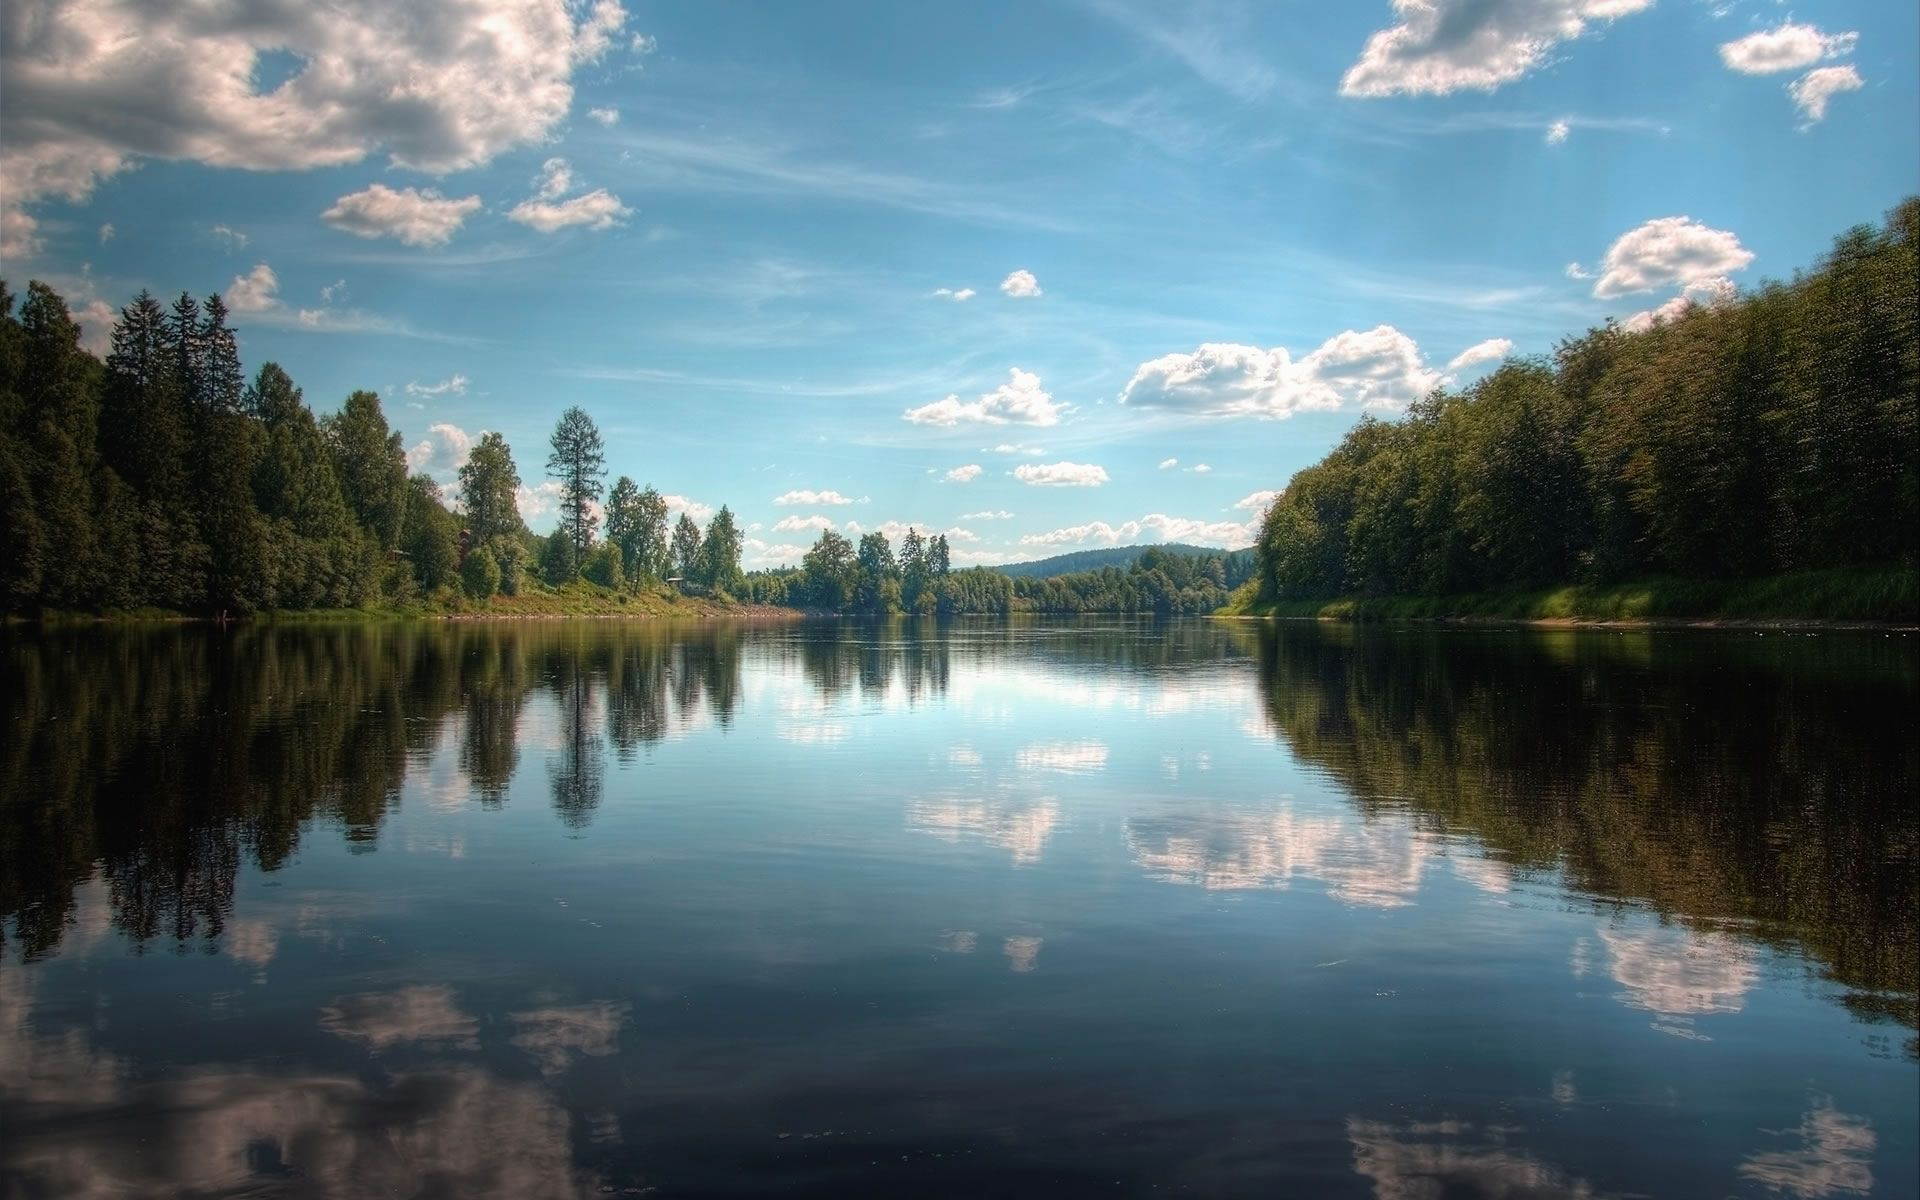 nature photo wallpaper,reflection,sky,body of water,nature,natural landscape